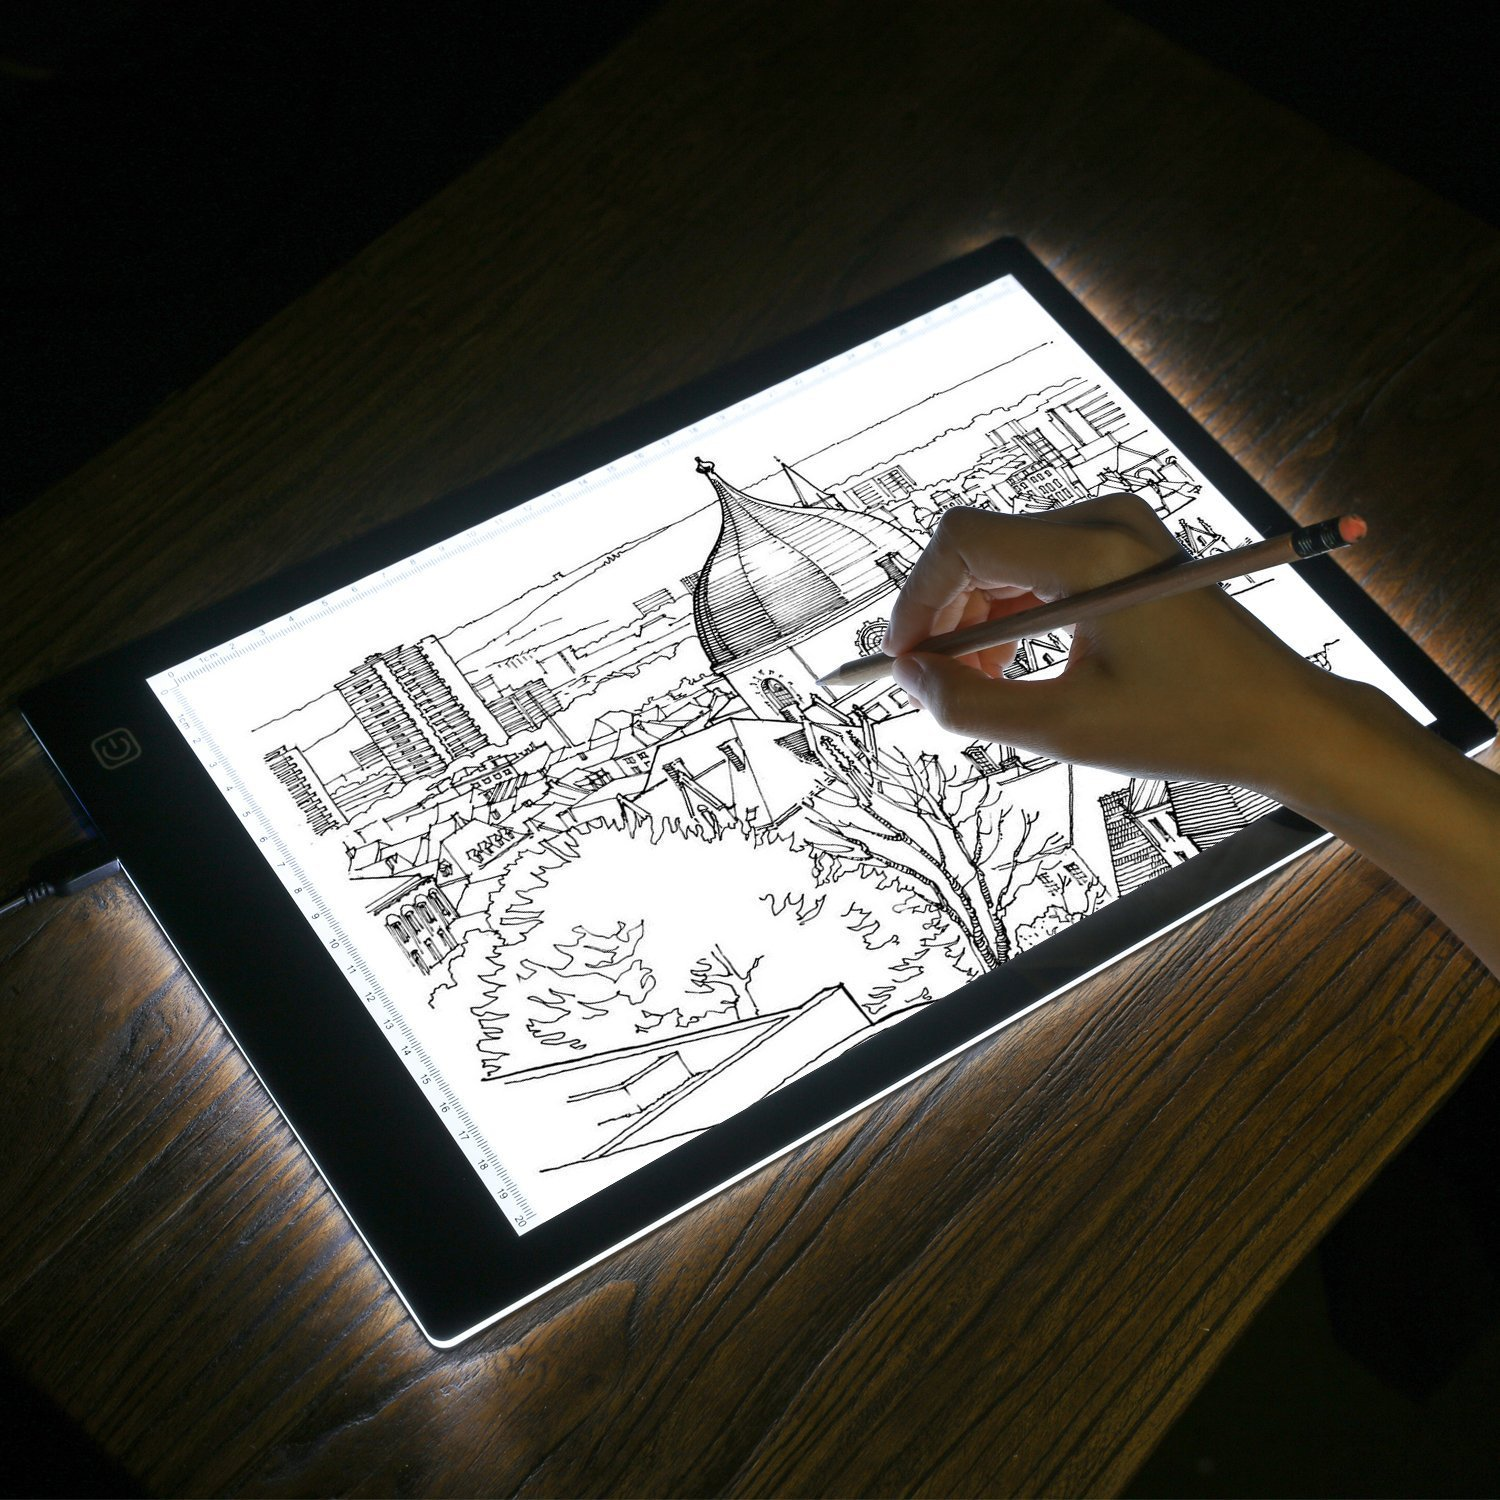 A4 Ultra-Thin Portable Dimmable LED Light Box Tracer USB Power Cable Brightness LED Artcraft Tracing Light Pad for Artists Drawing Sketching Animation Stencilling X-rayViewing